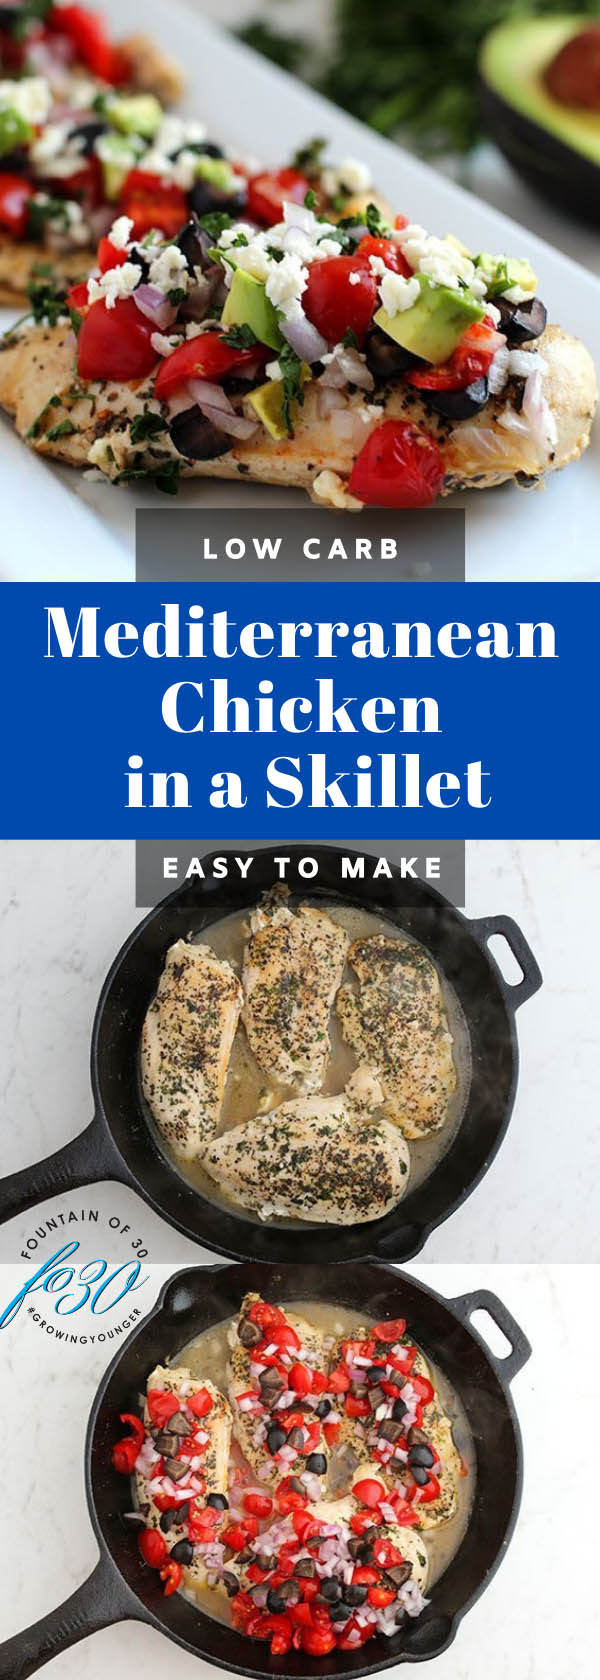 easy skillet chicken recipe fountainof30